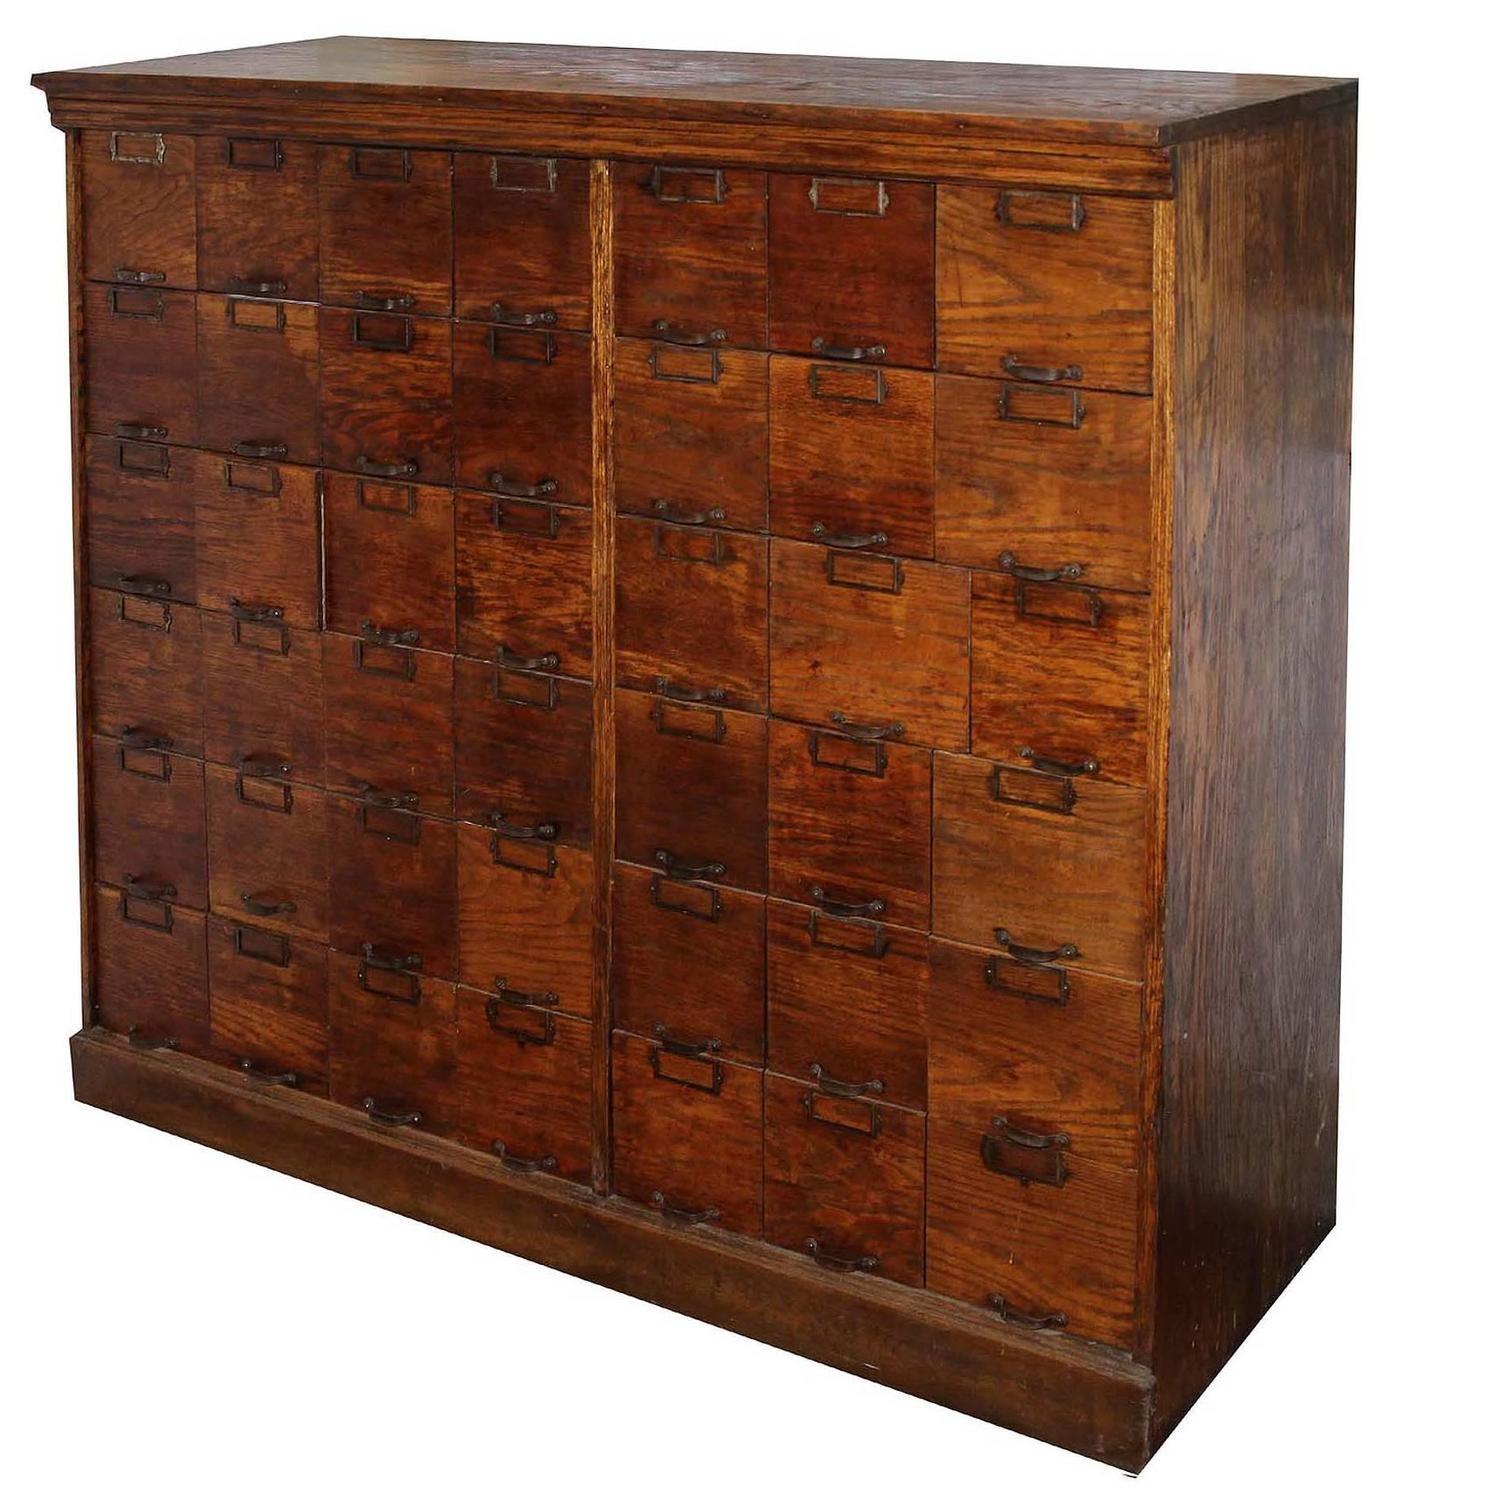 Apothecary Furniture For Sale: 19th Century Store Cabinet For Sale At 1stdibs